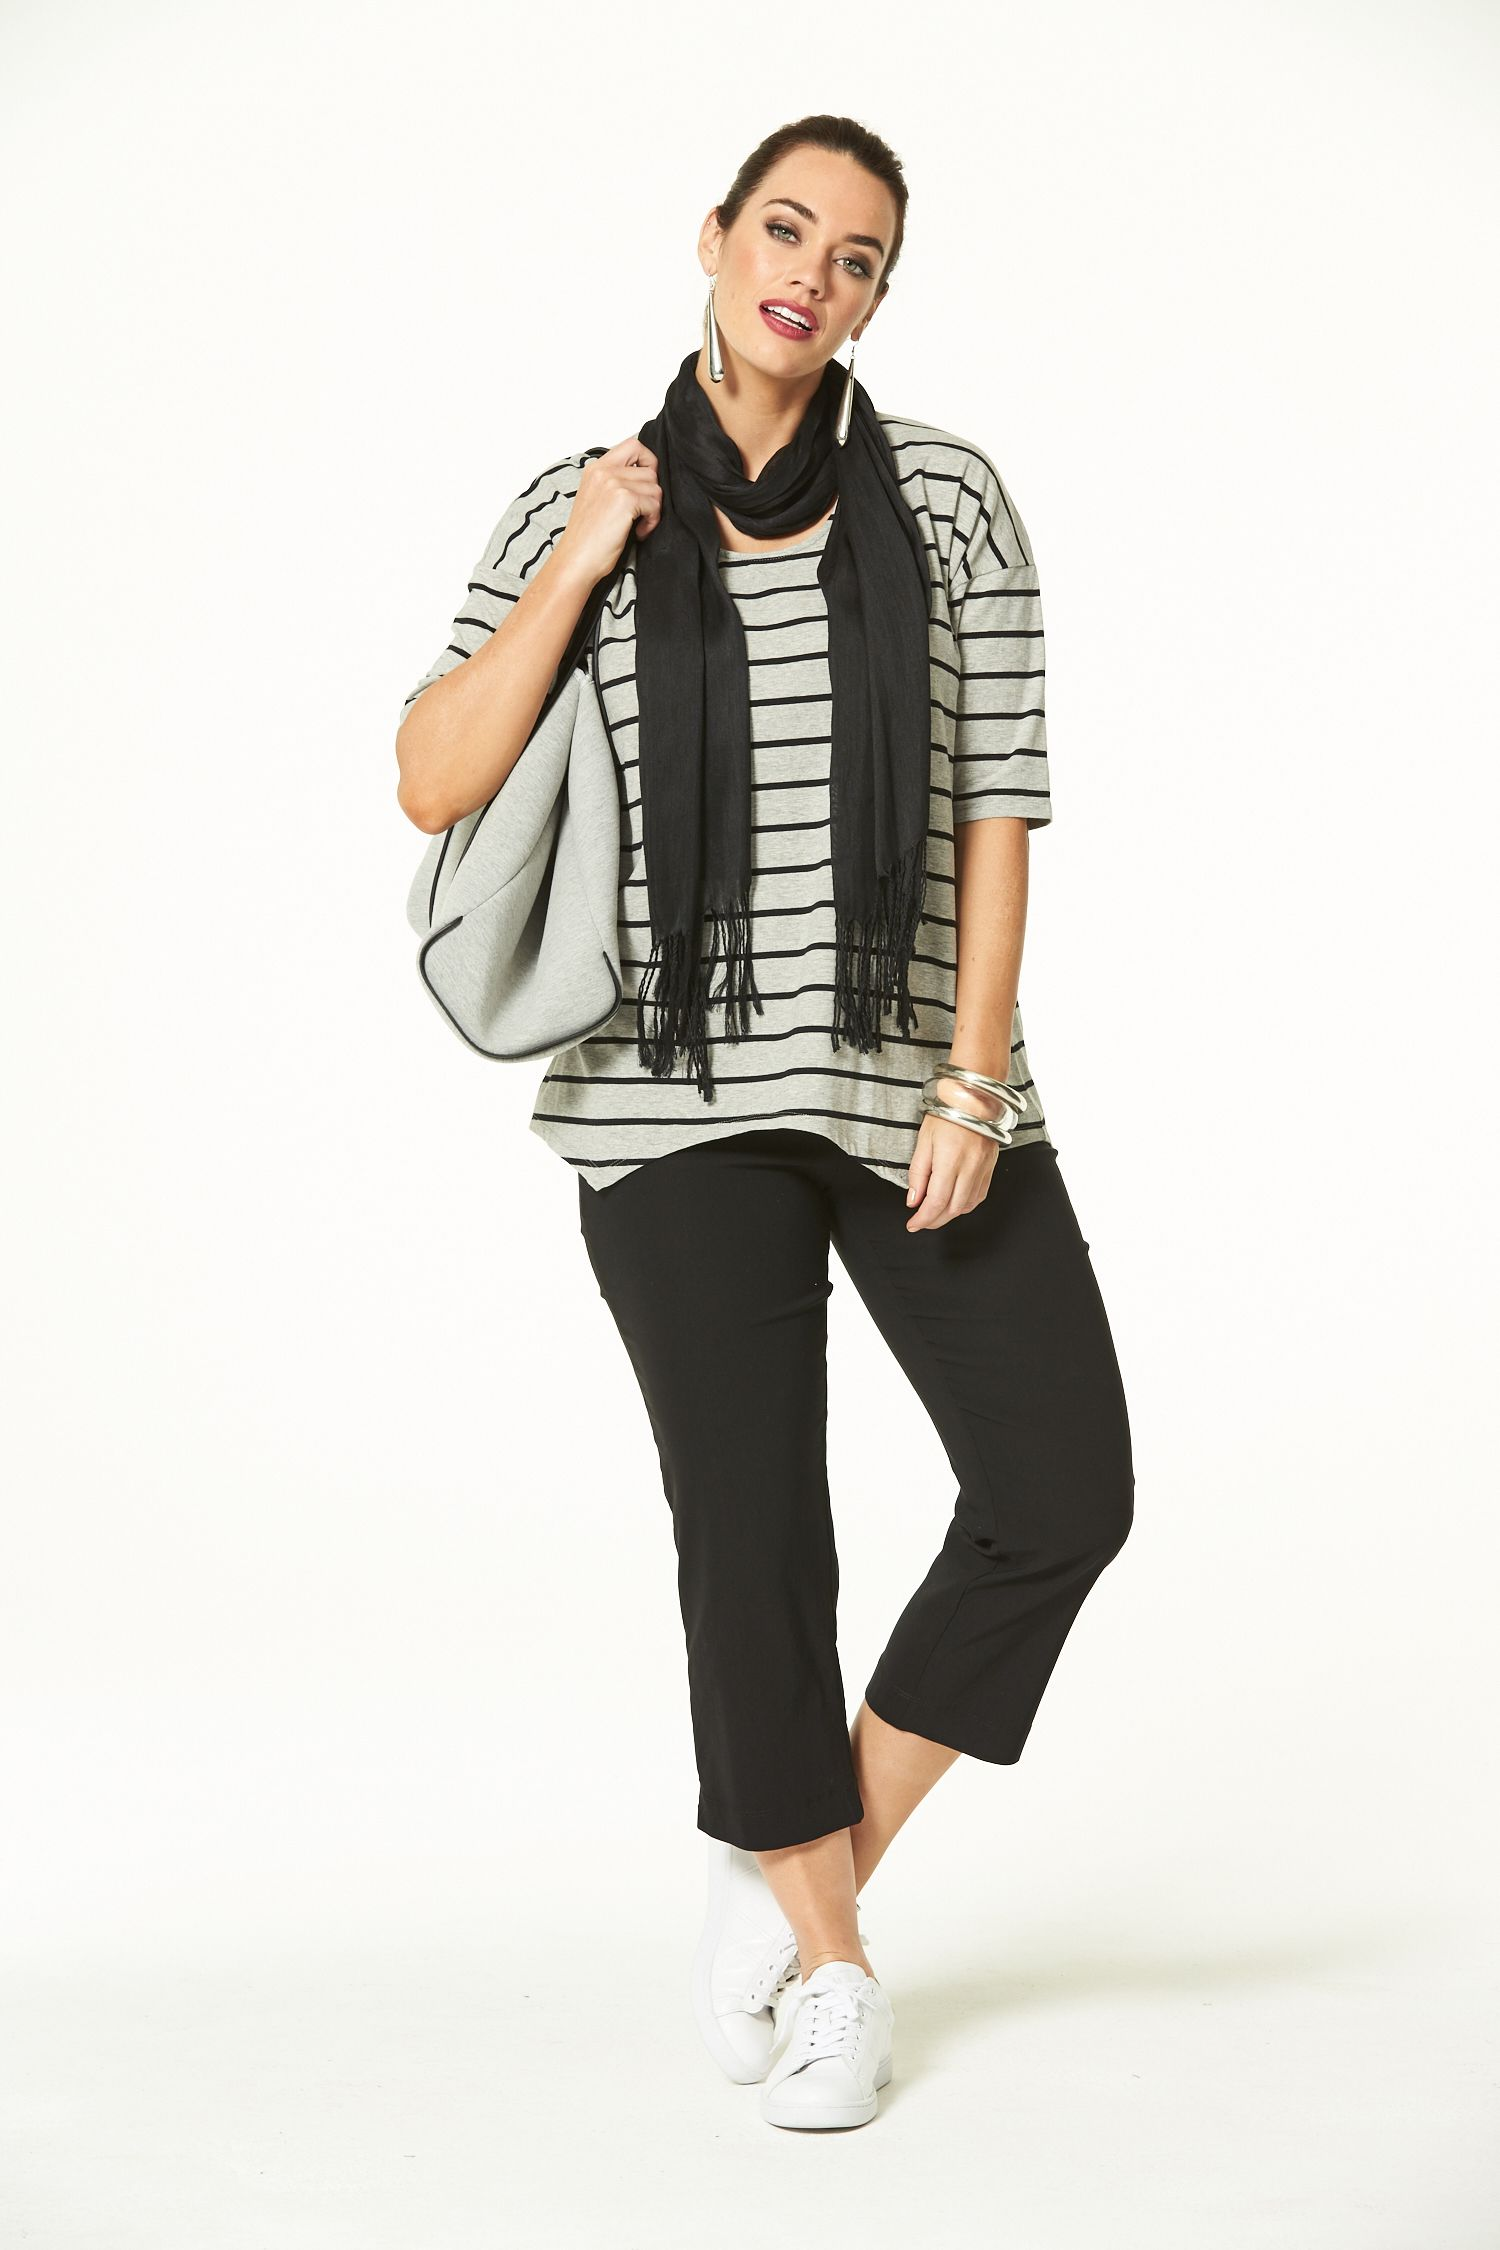 DLuxe Stripey in Grey & Black Bomber jacket, Fashion